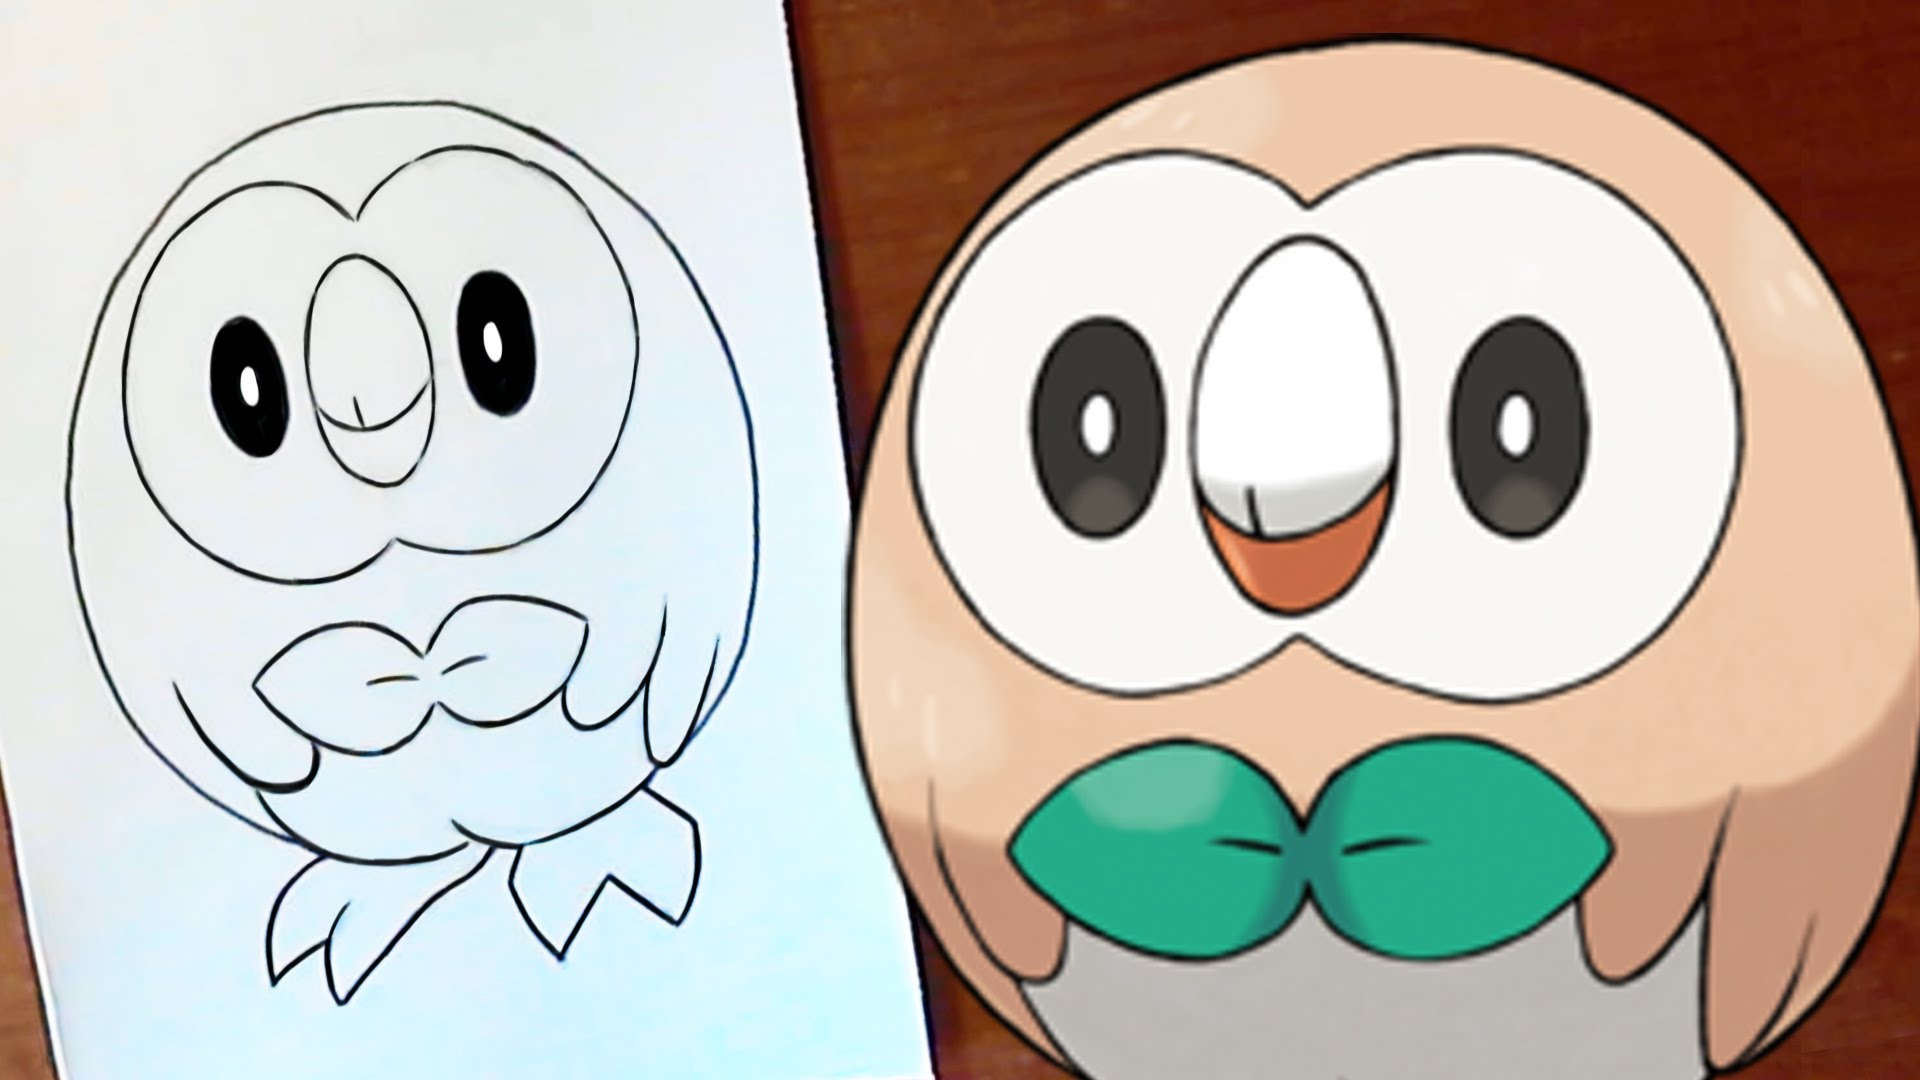 1920x1080 How To Draw Rowlet Starter Pokemon For Pokemon Sunmoon